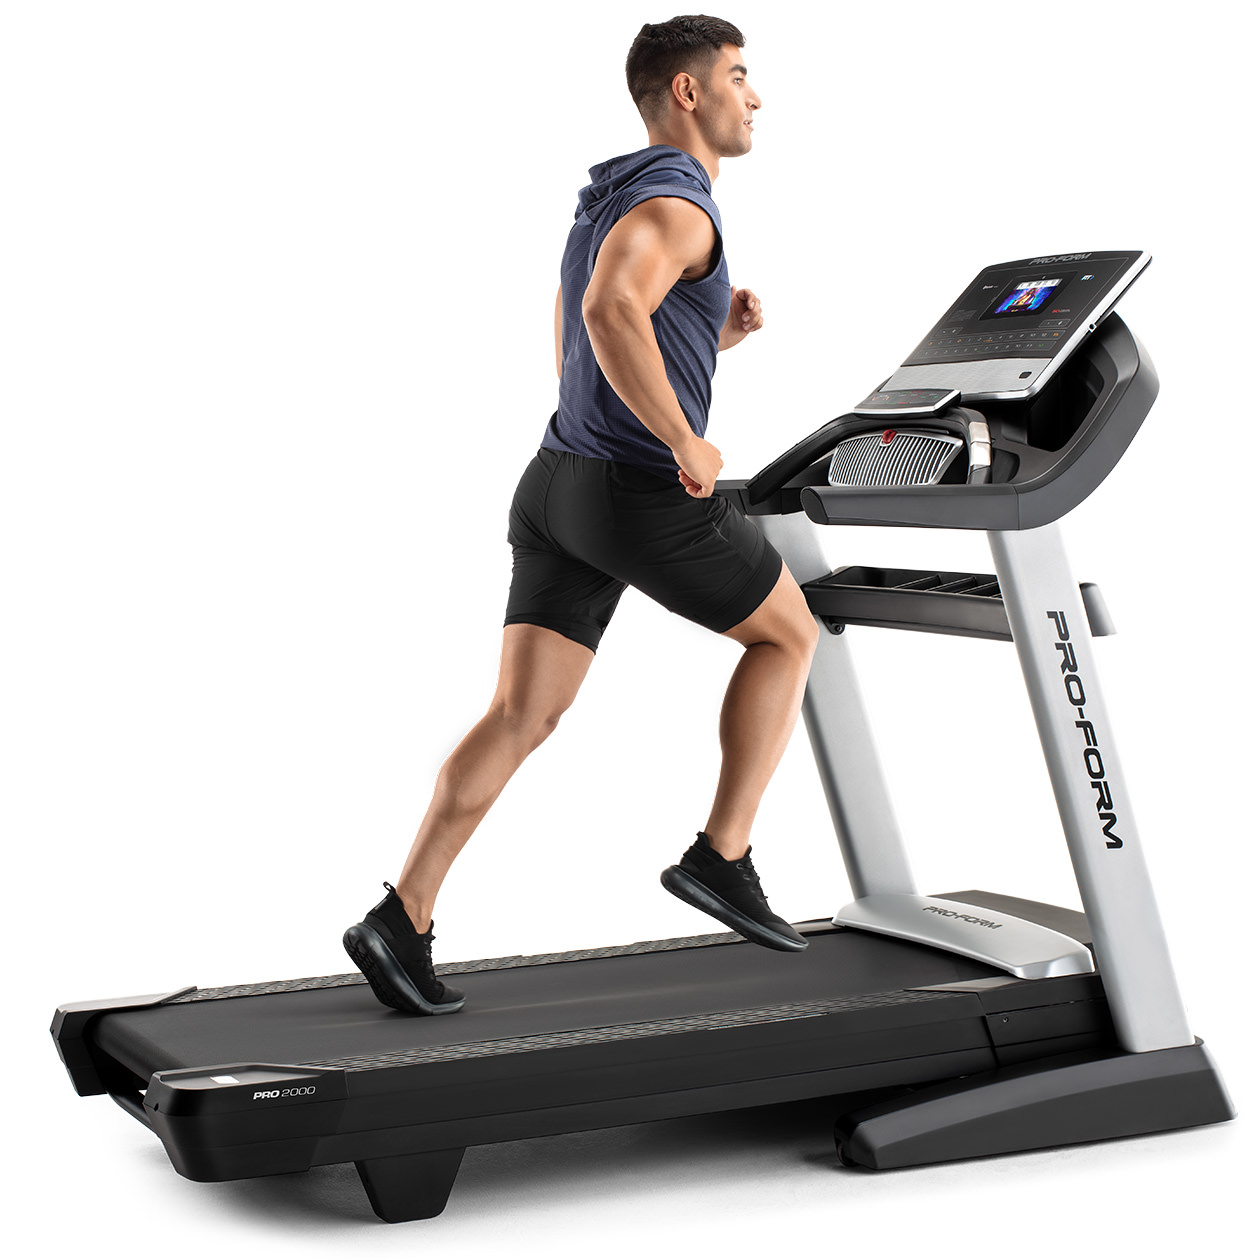 Proform performance 600 treadmill manual.